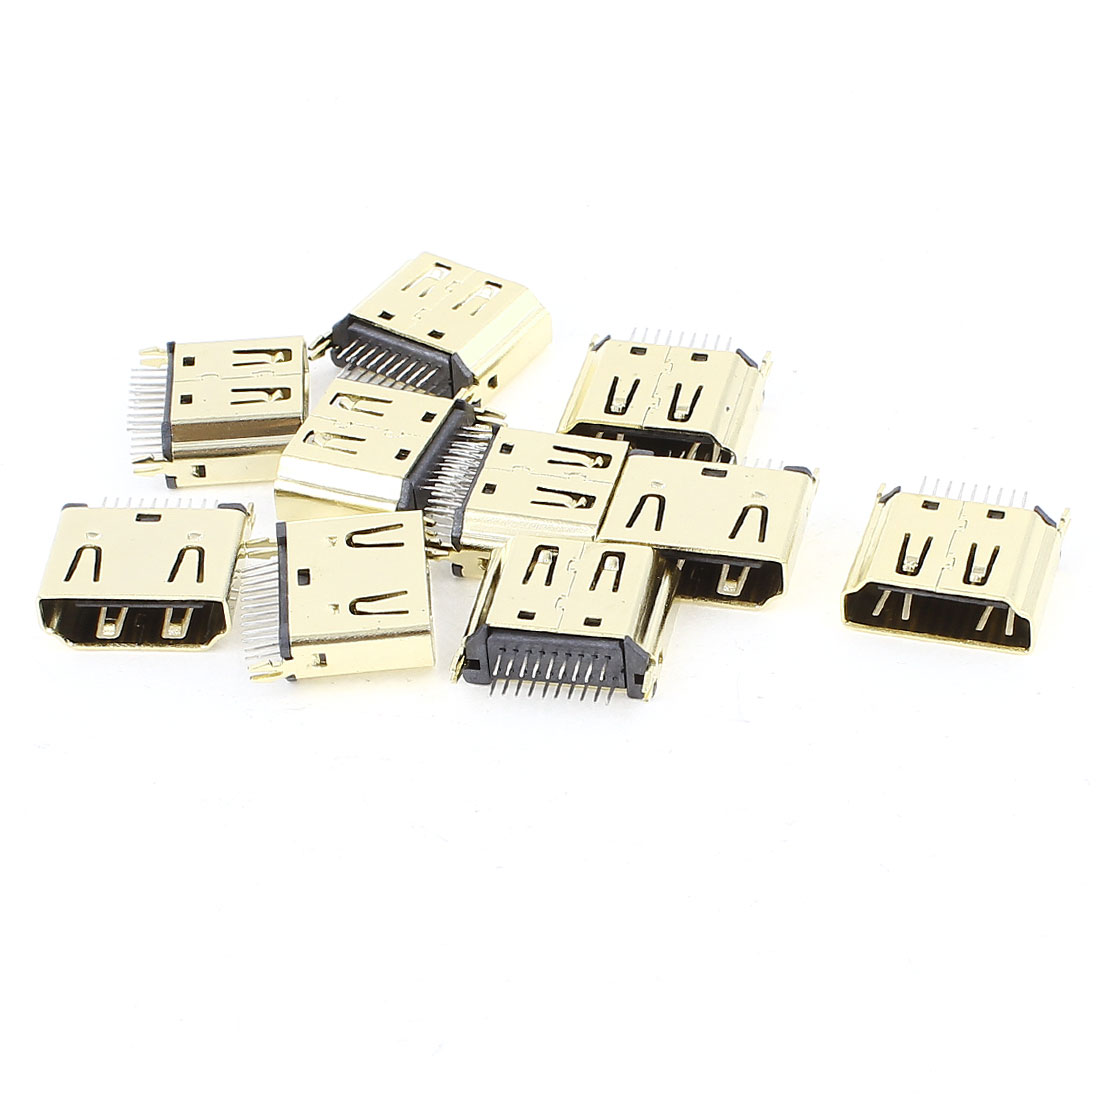 10PCS Gold Tone Micro 19Pins 180 Degree DIP Type HDMI Female Connectors